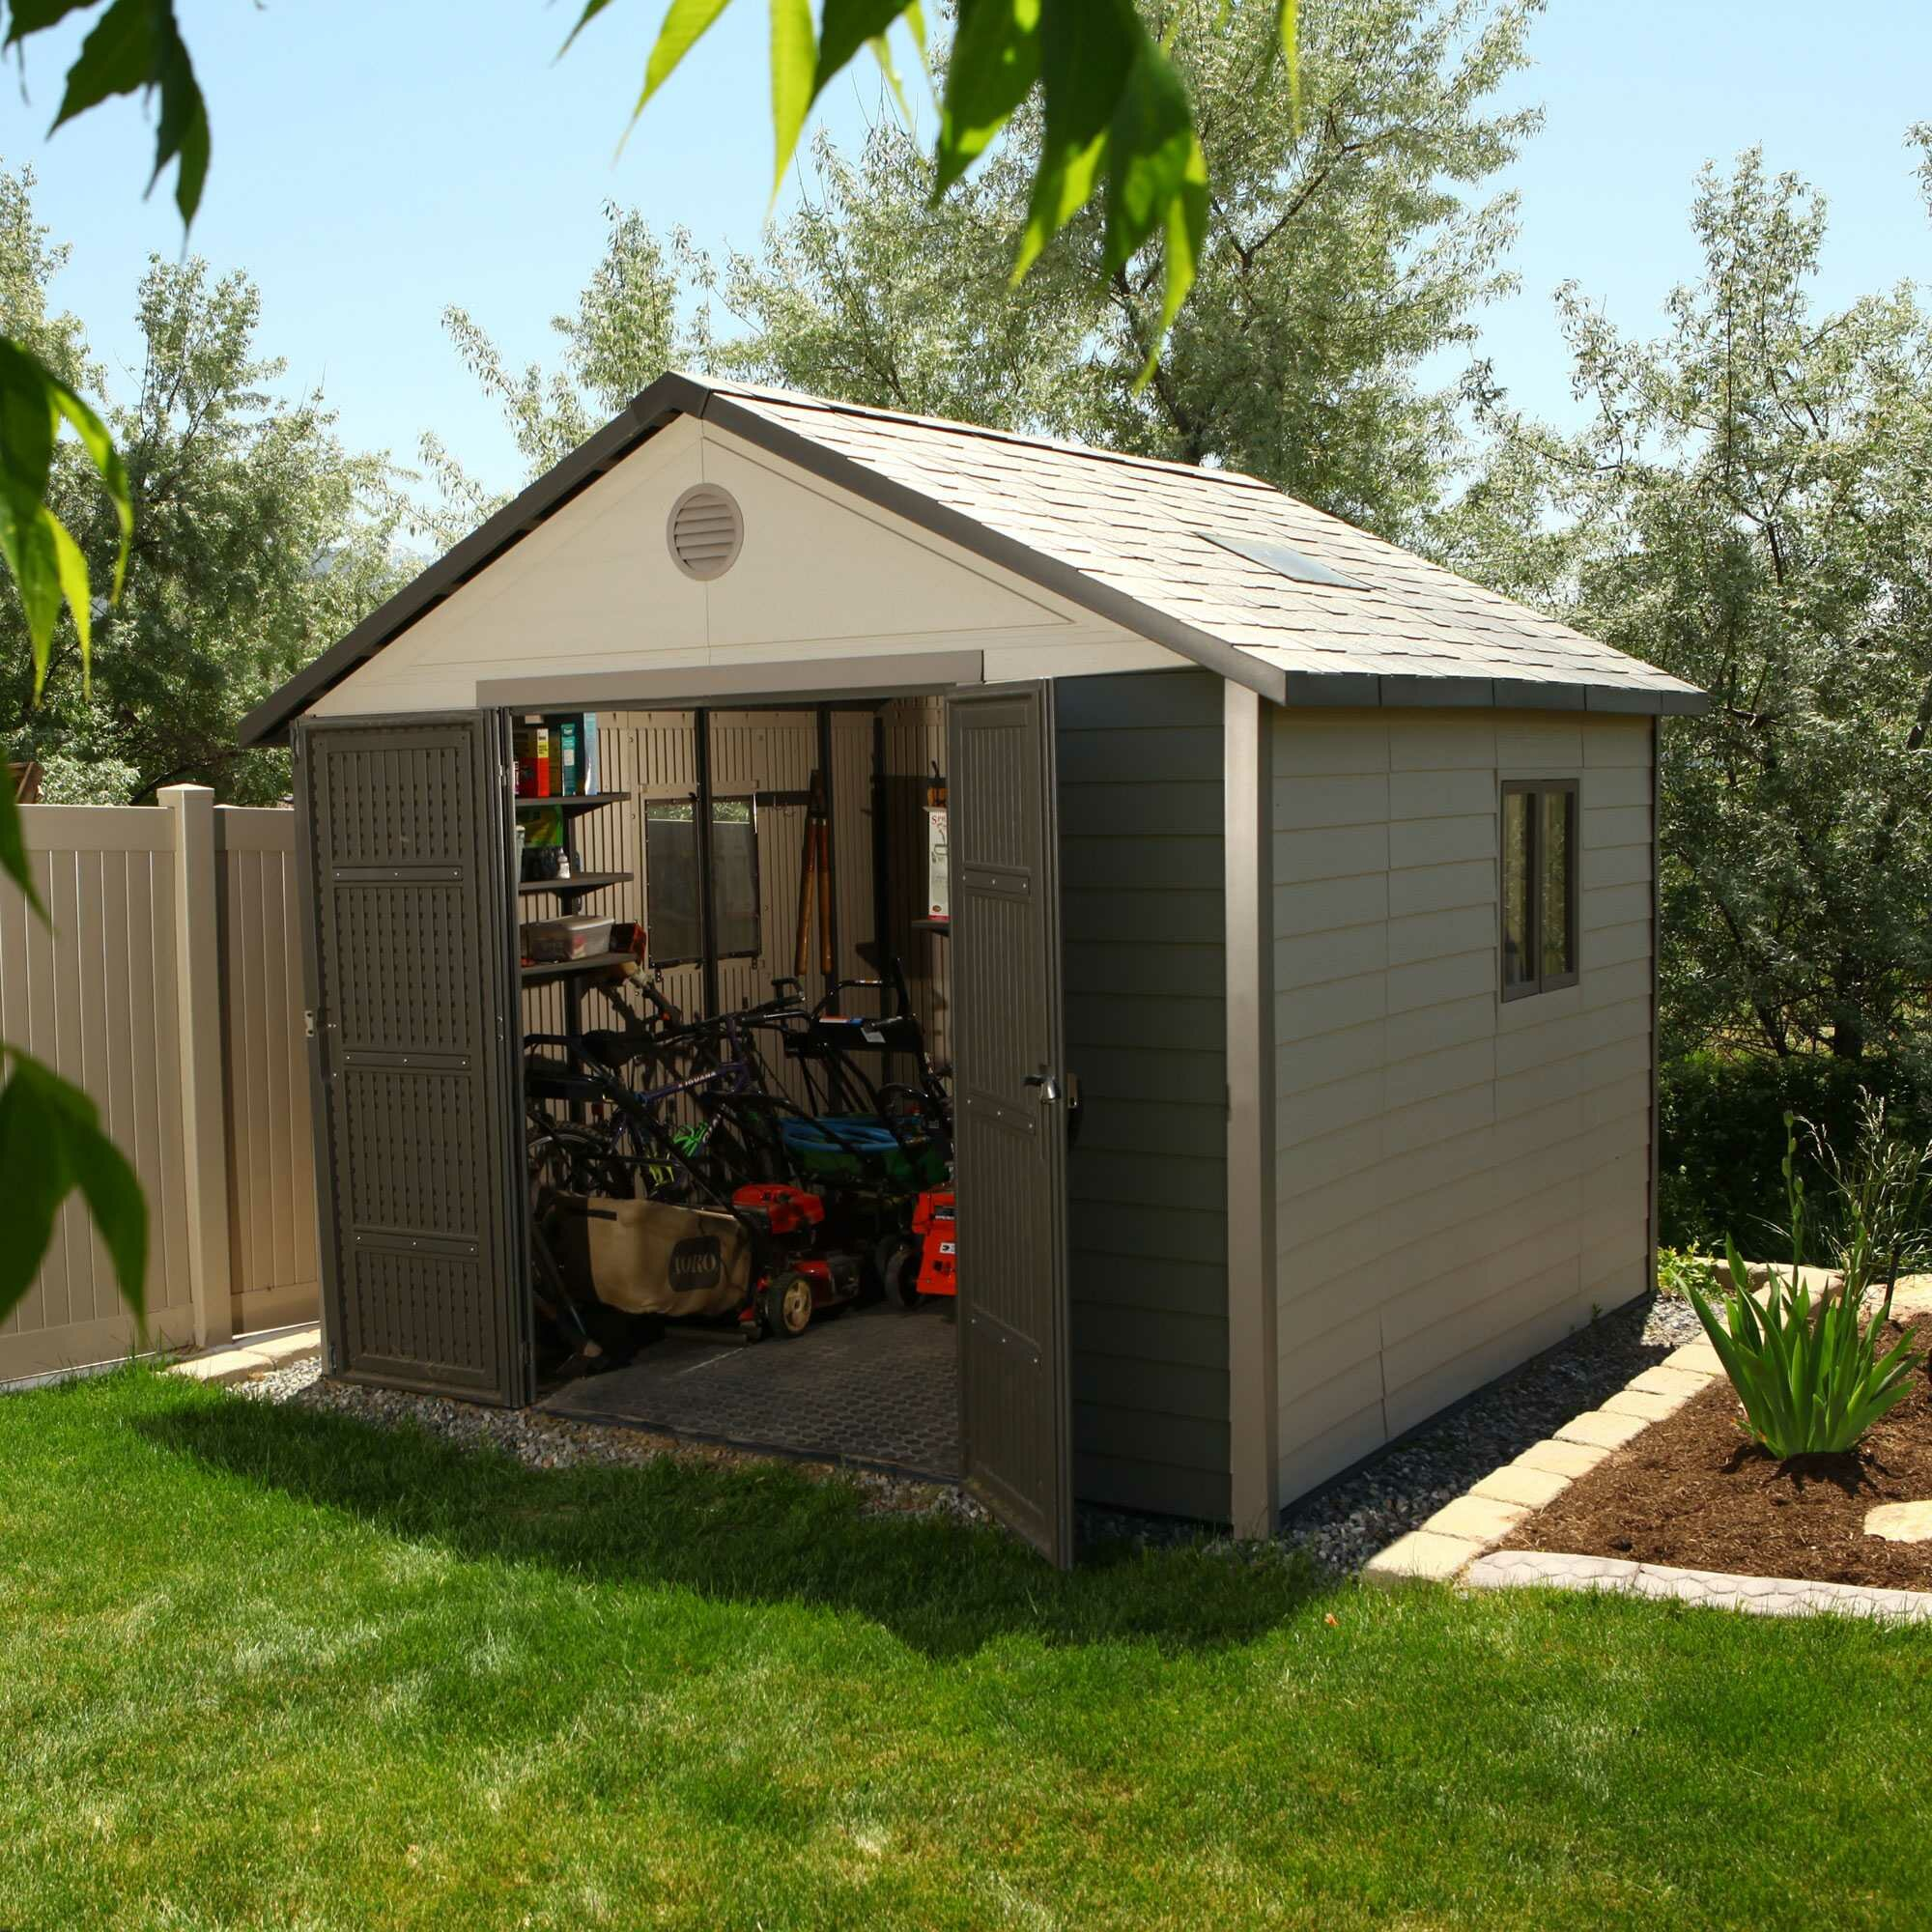 Lifetime 10 ft w x 10 ft d plastic storage shed for Garden shed 10x10